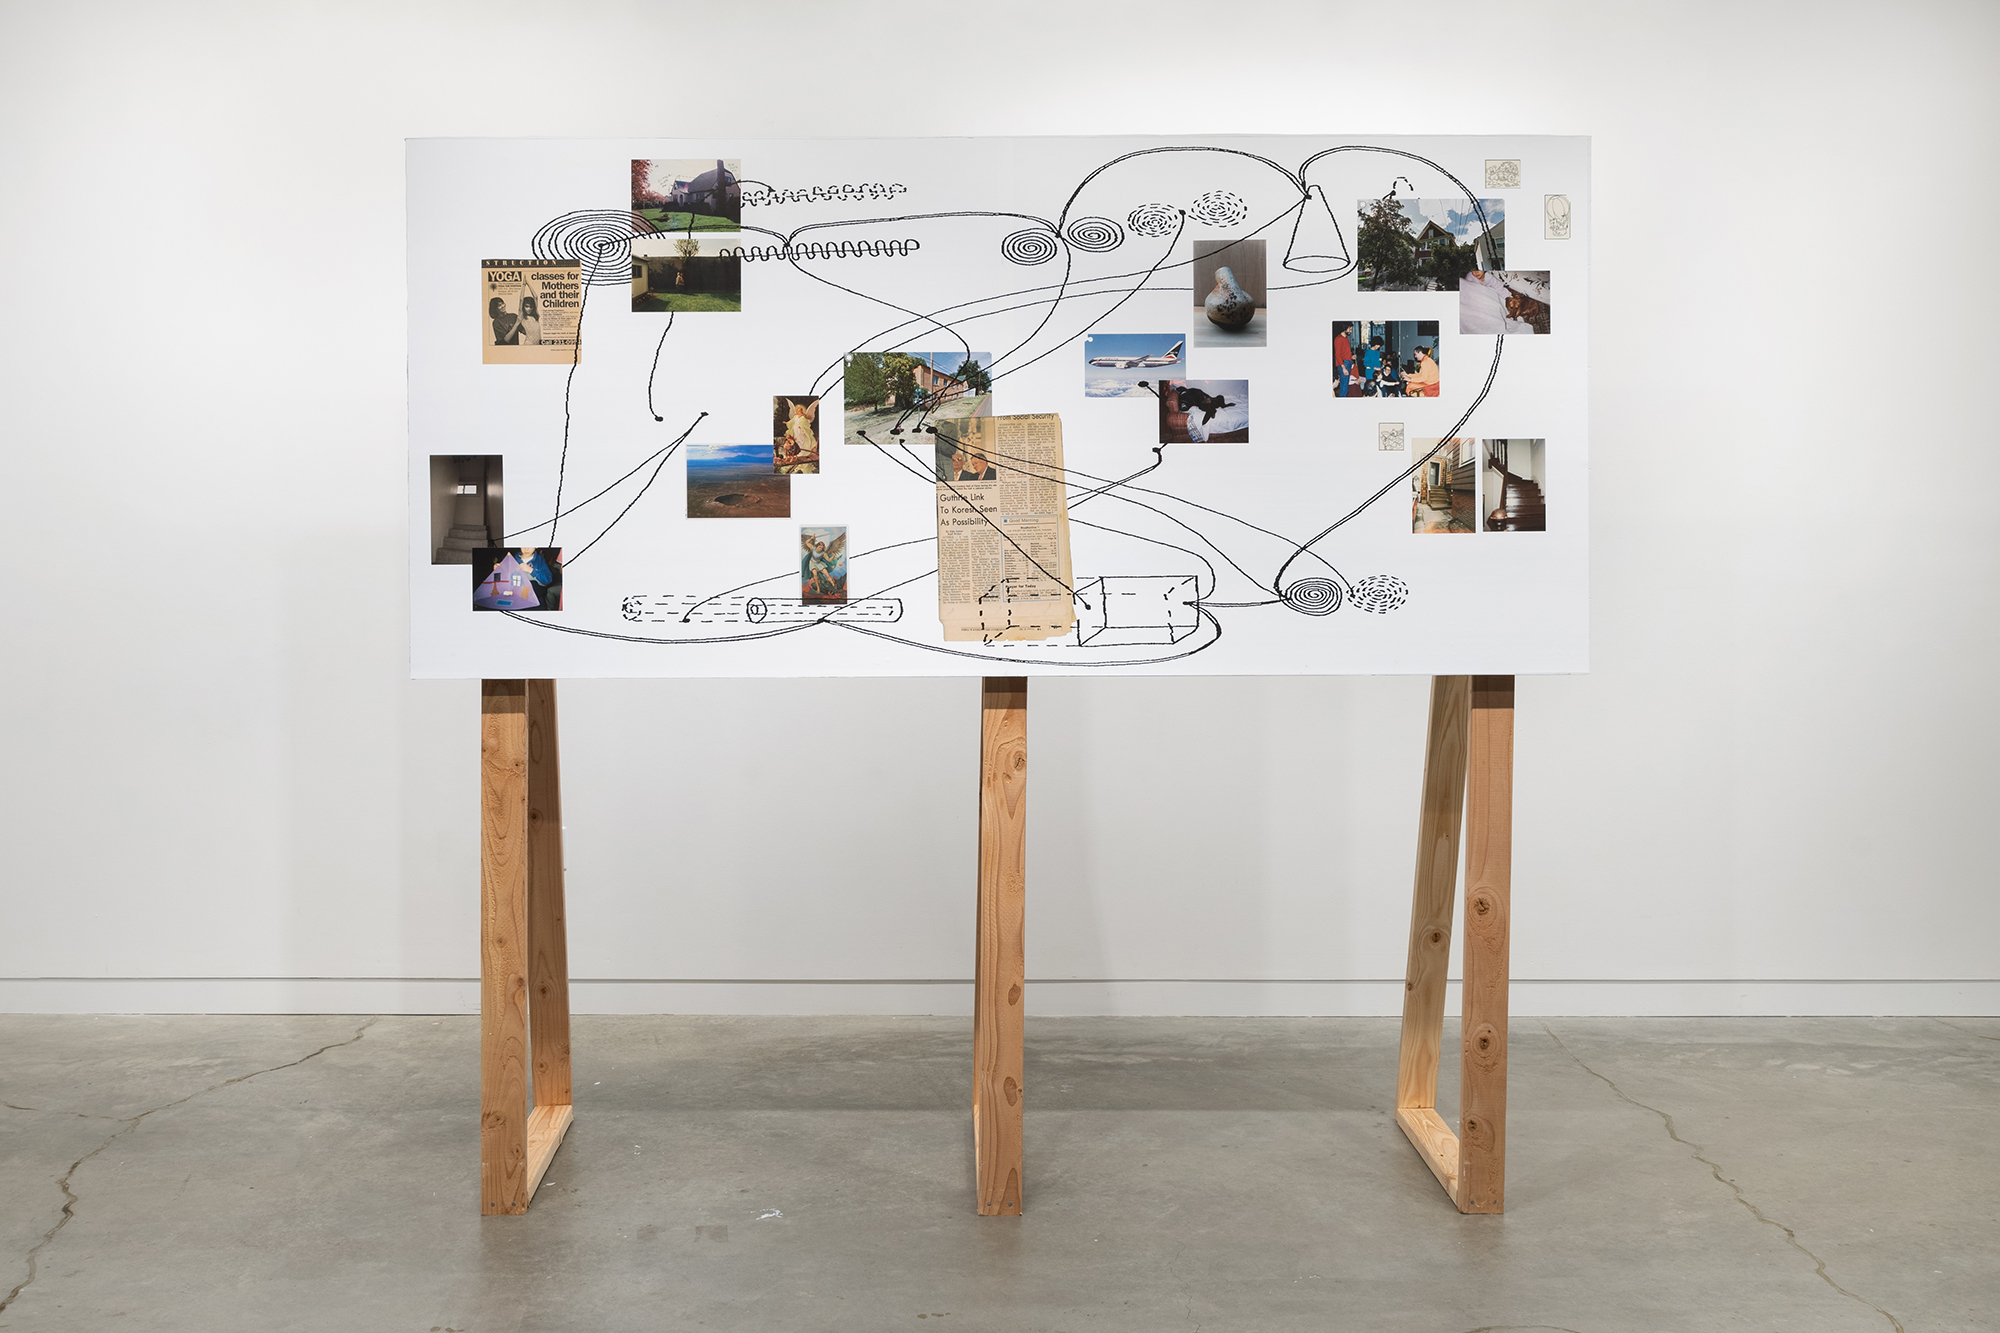 Rami George, Untitled (mapping), 2020, inkjet print, wood, 84 x 96 x 28 in.